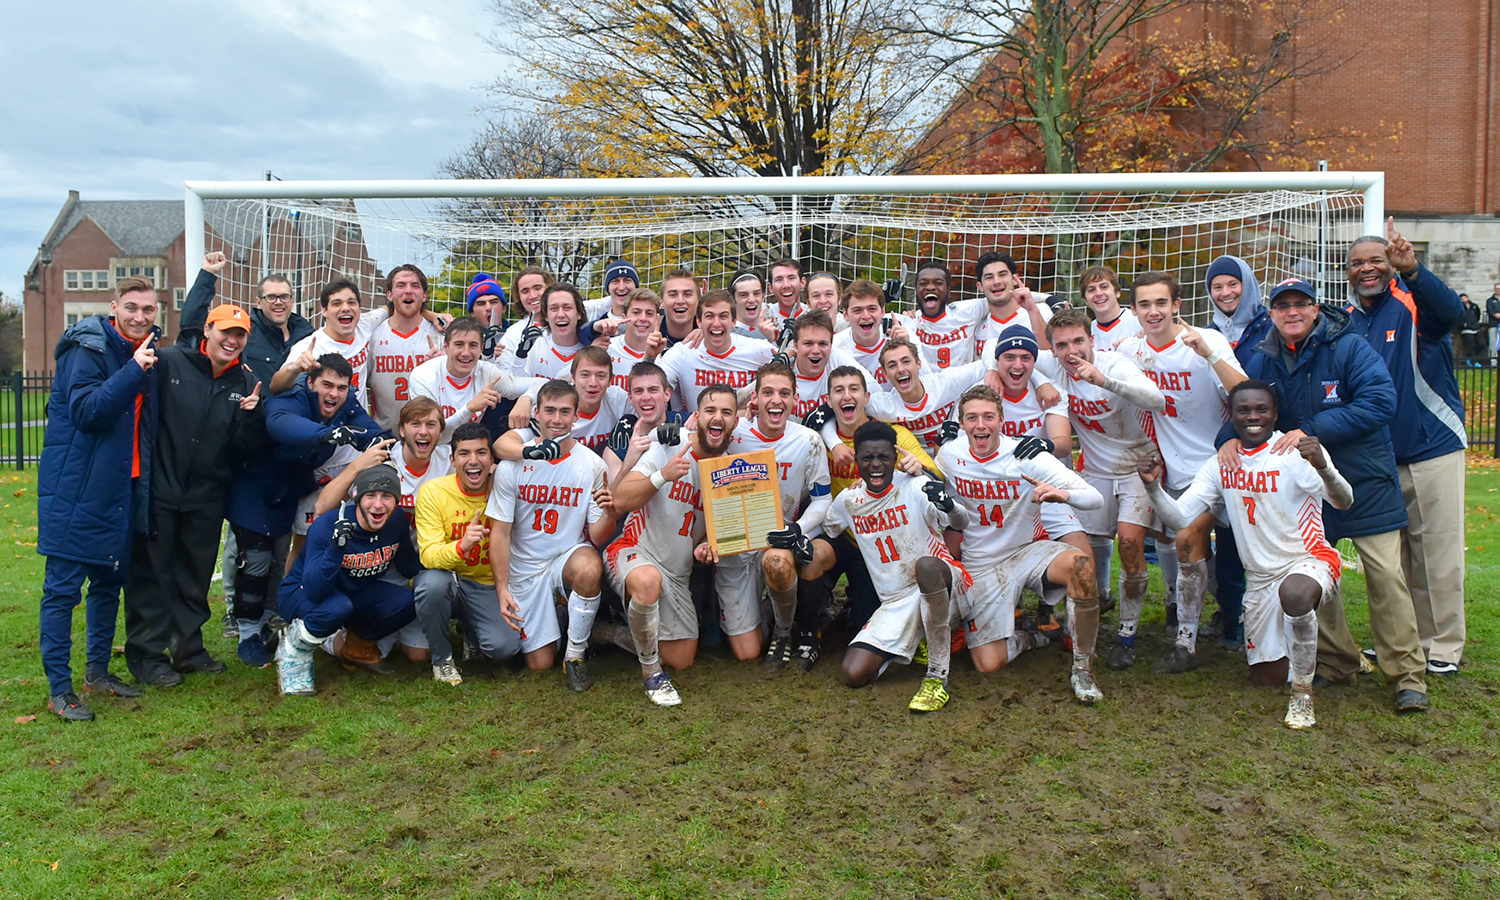 Joined by their coaches and President Gregory J. Vincent '83, the Hobart soccer team gathers for a celebration photo after capturing the 2017 Liberty League Men's Soccer Championship title.